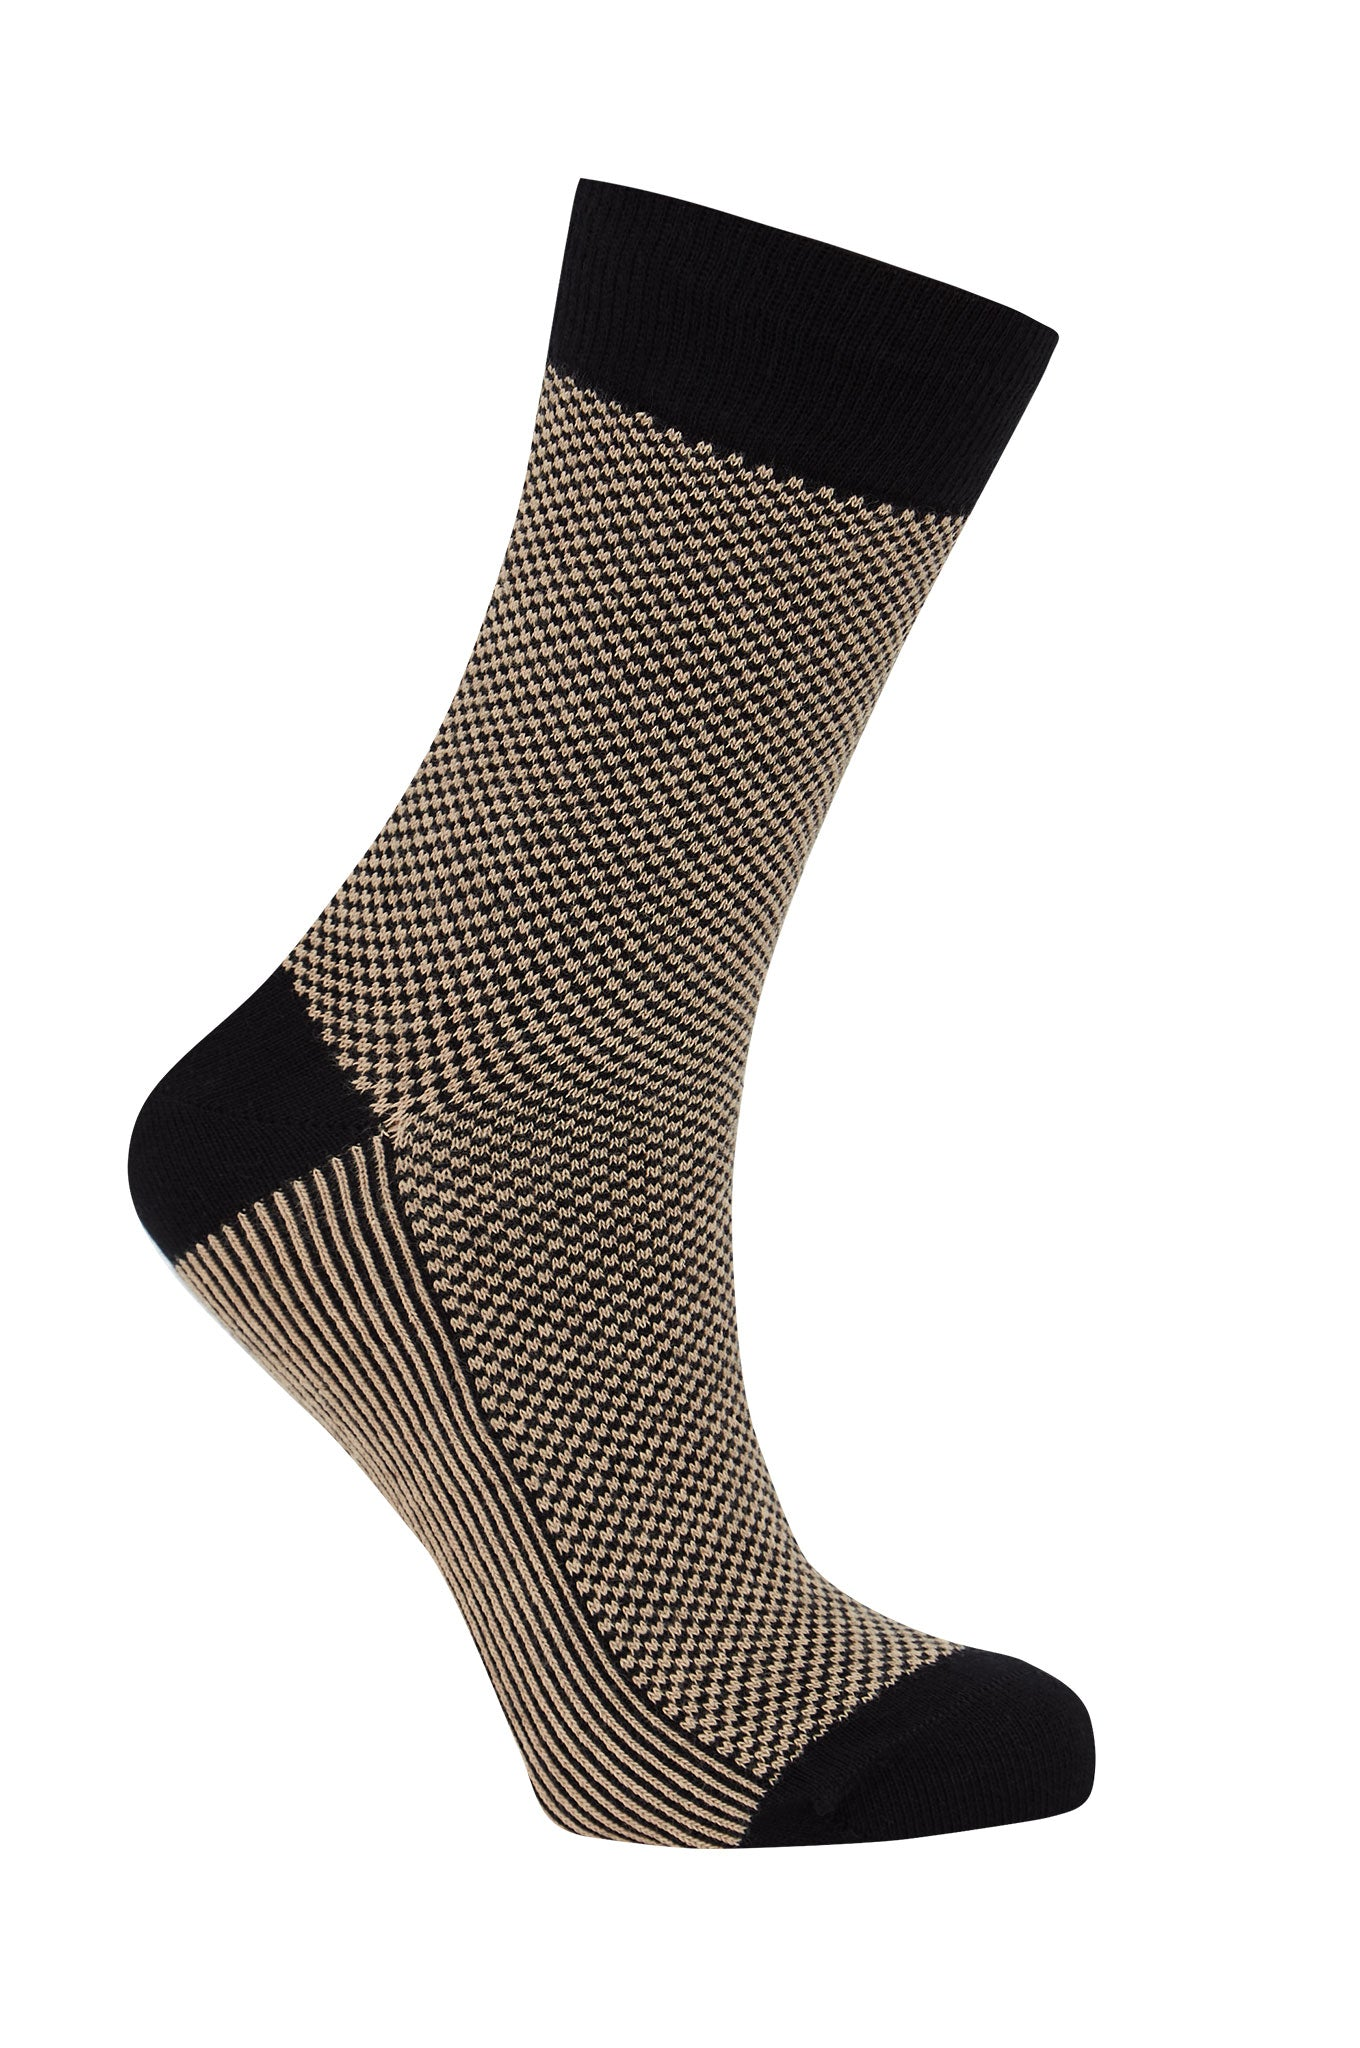 DOTS Black - GOTS Organic Cotton Socks